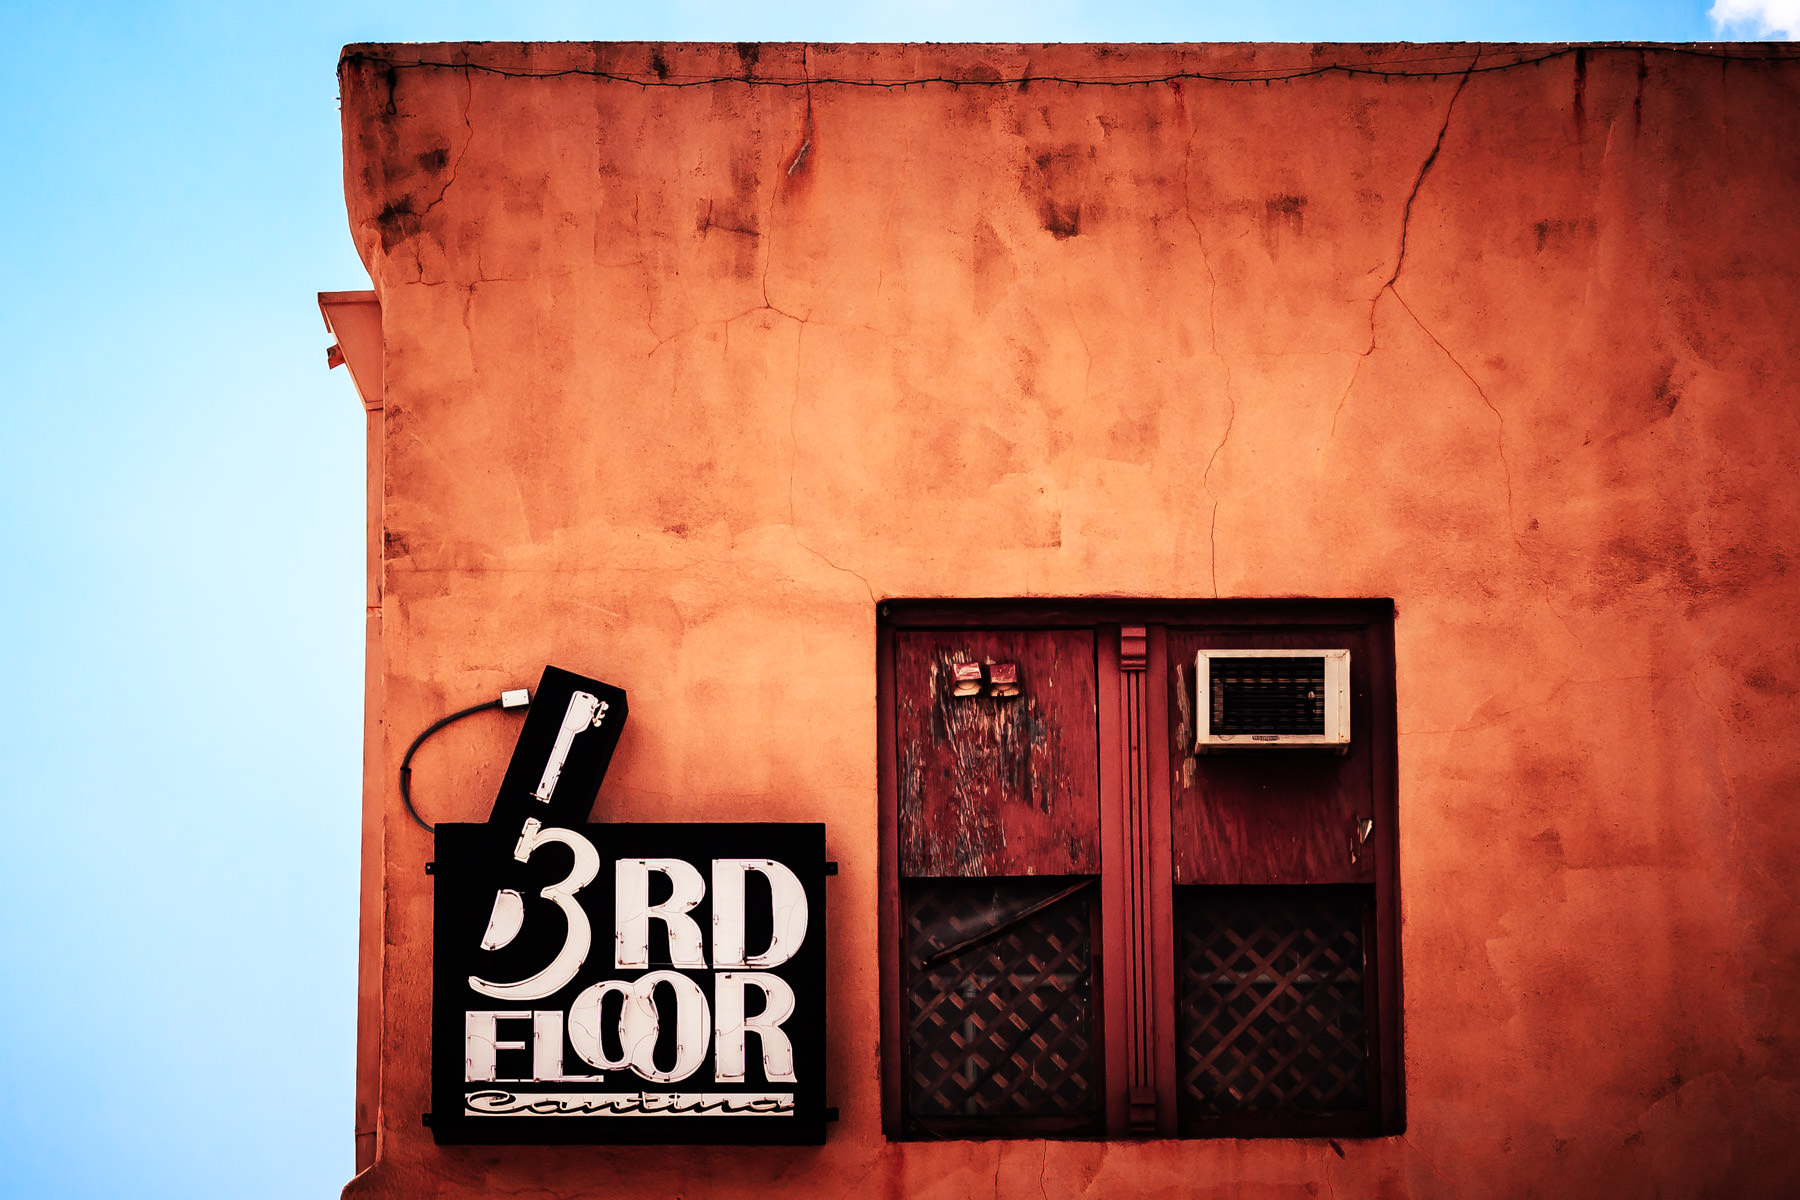 The 3rd Floor Cantina—a live music venue—inDowntown Bryan, Texas.